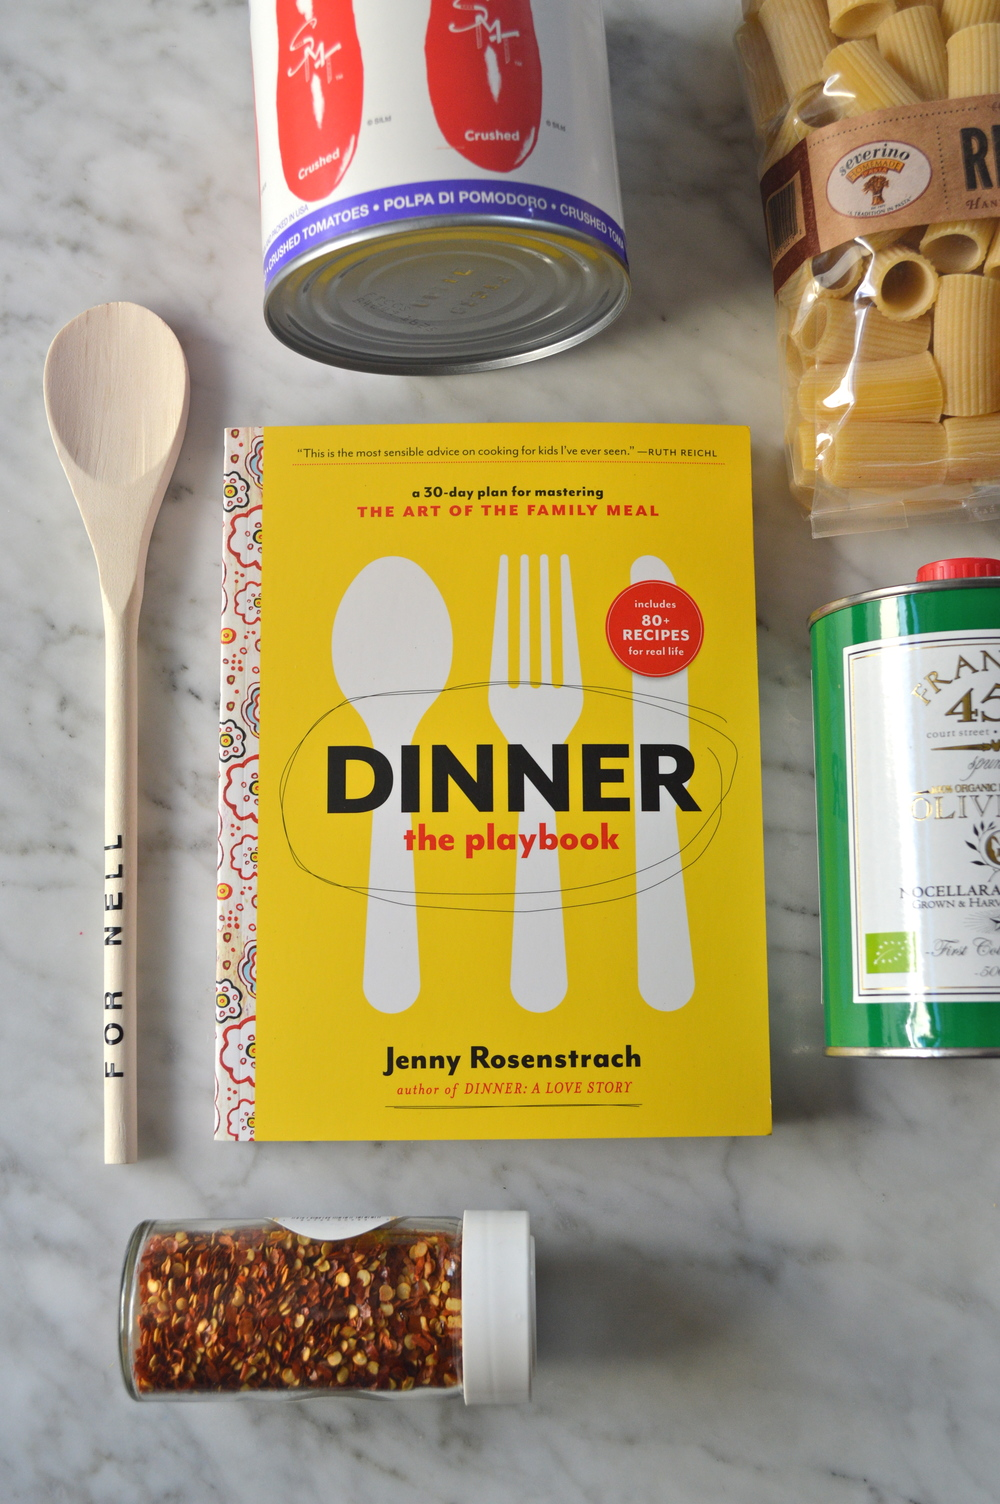 Dinner-a-Playbook-Gift-Kit-ingredients